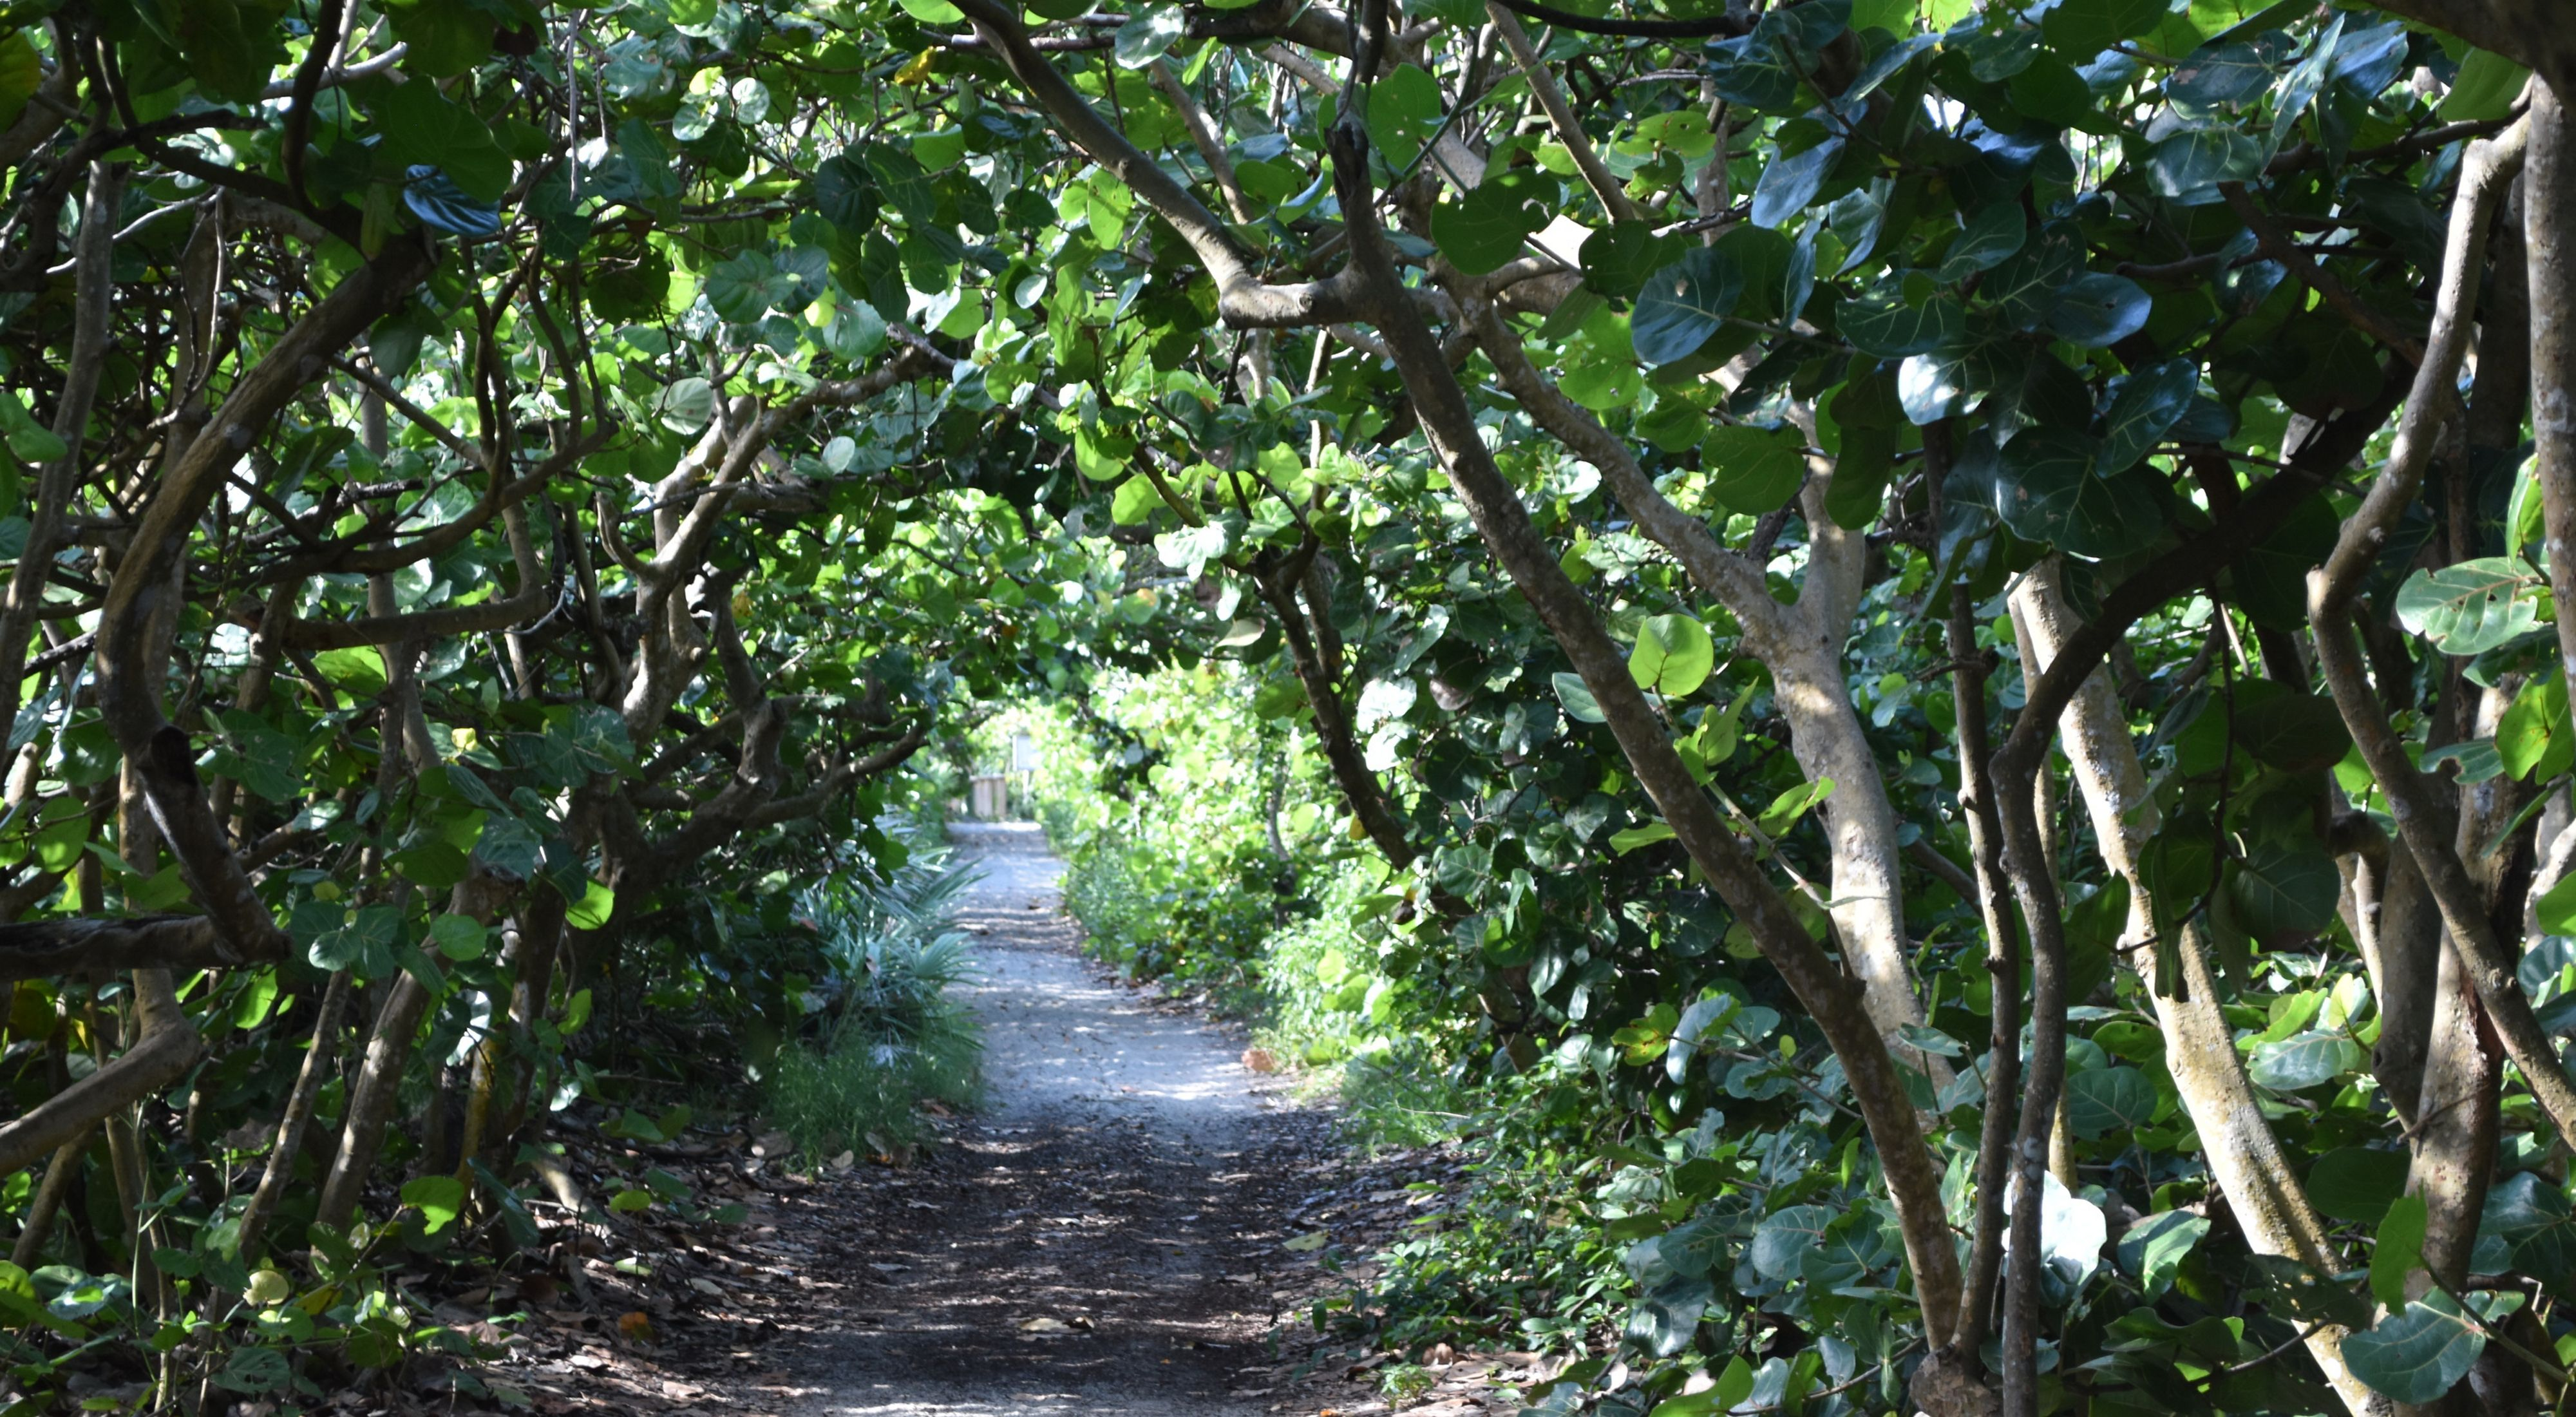 A tunnel of green sea grapes with sunlight peeking through the branches.